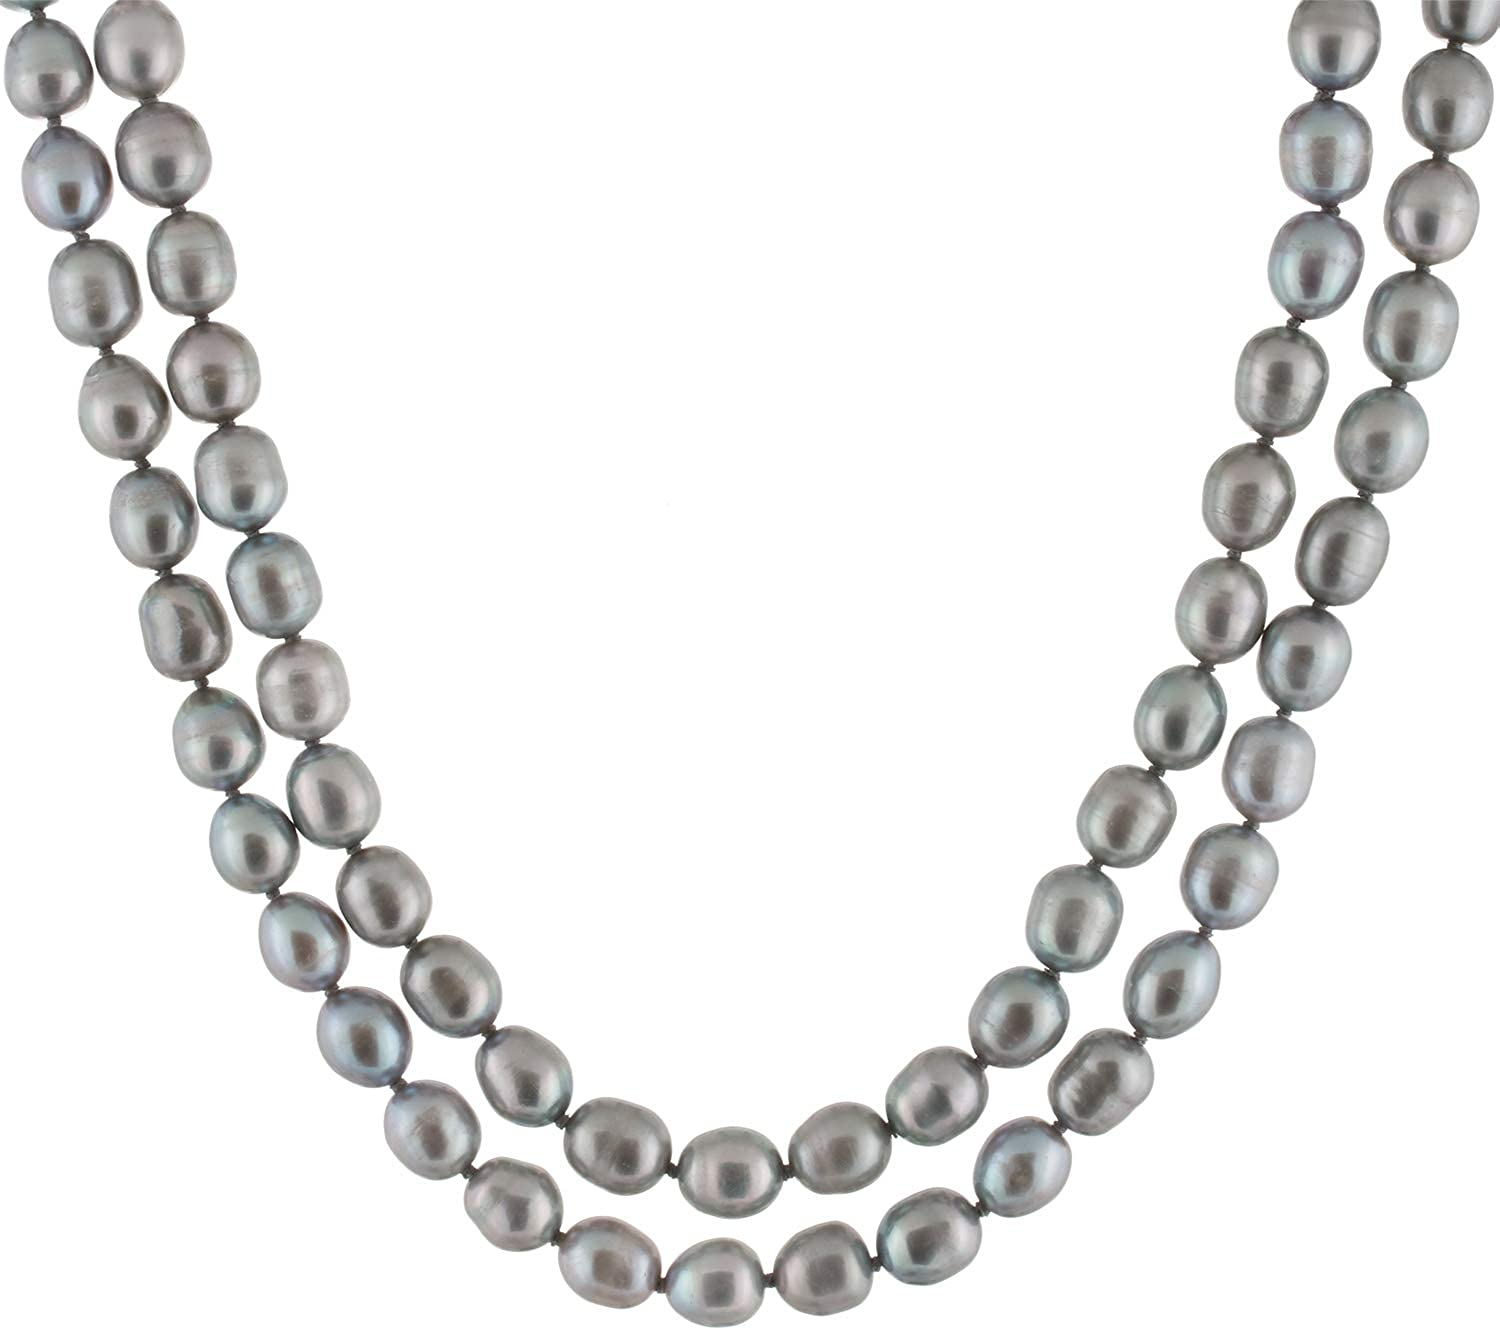 Handpicked A Quality 8-9mm Grey or Black Freshwater Cultured Pearl Strand Endless 60